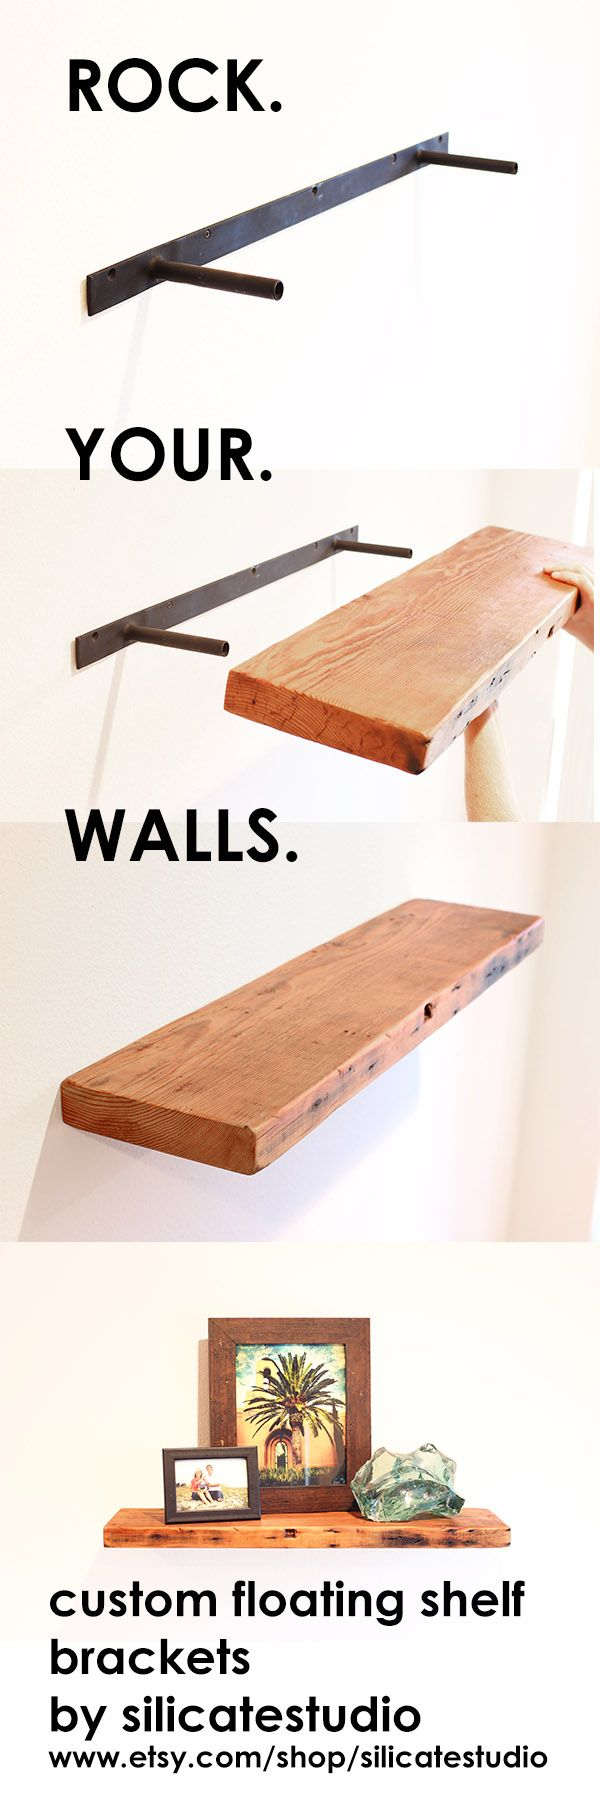 wood a floating shelf with a tough and invisible custom floating shelf ...